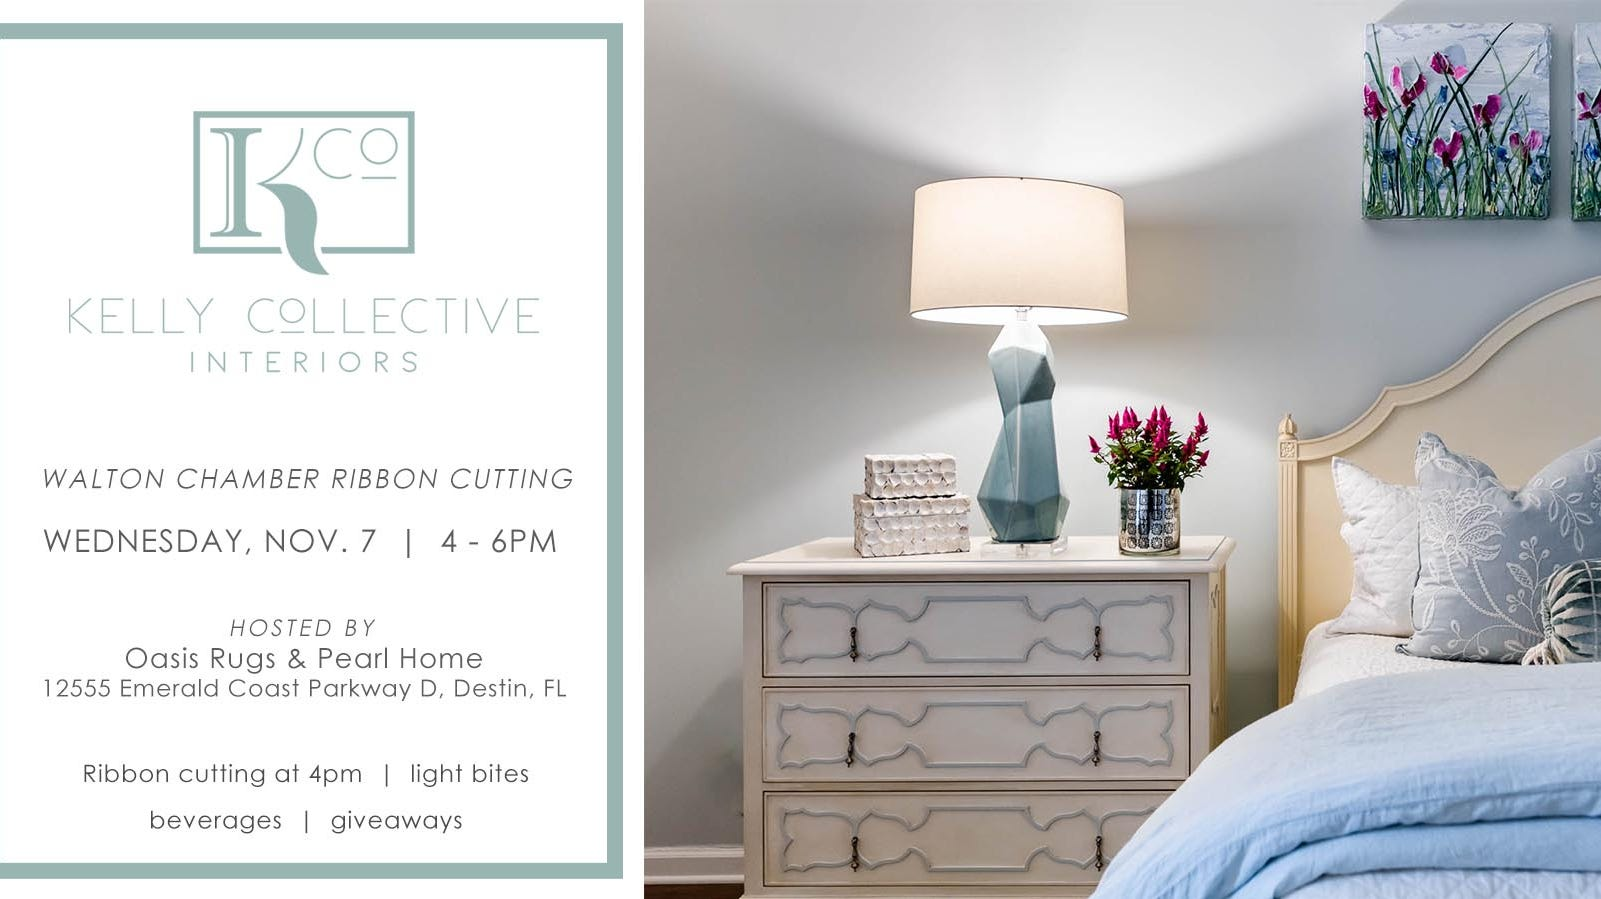 Kelly Collective Interiors will be made official with a ribbon cutting celebration at Oasis Rugs & Pearl Home, located at 12555 Emerald Coast Parkway, Suite D, in Mirimar Beach on Nov. 7 at 4 p.m.